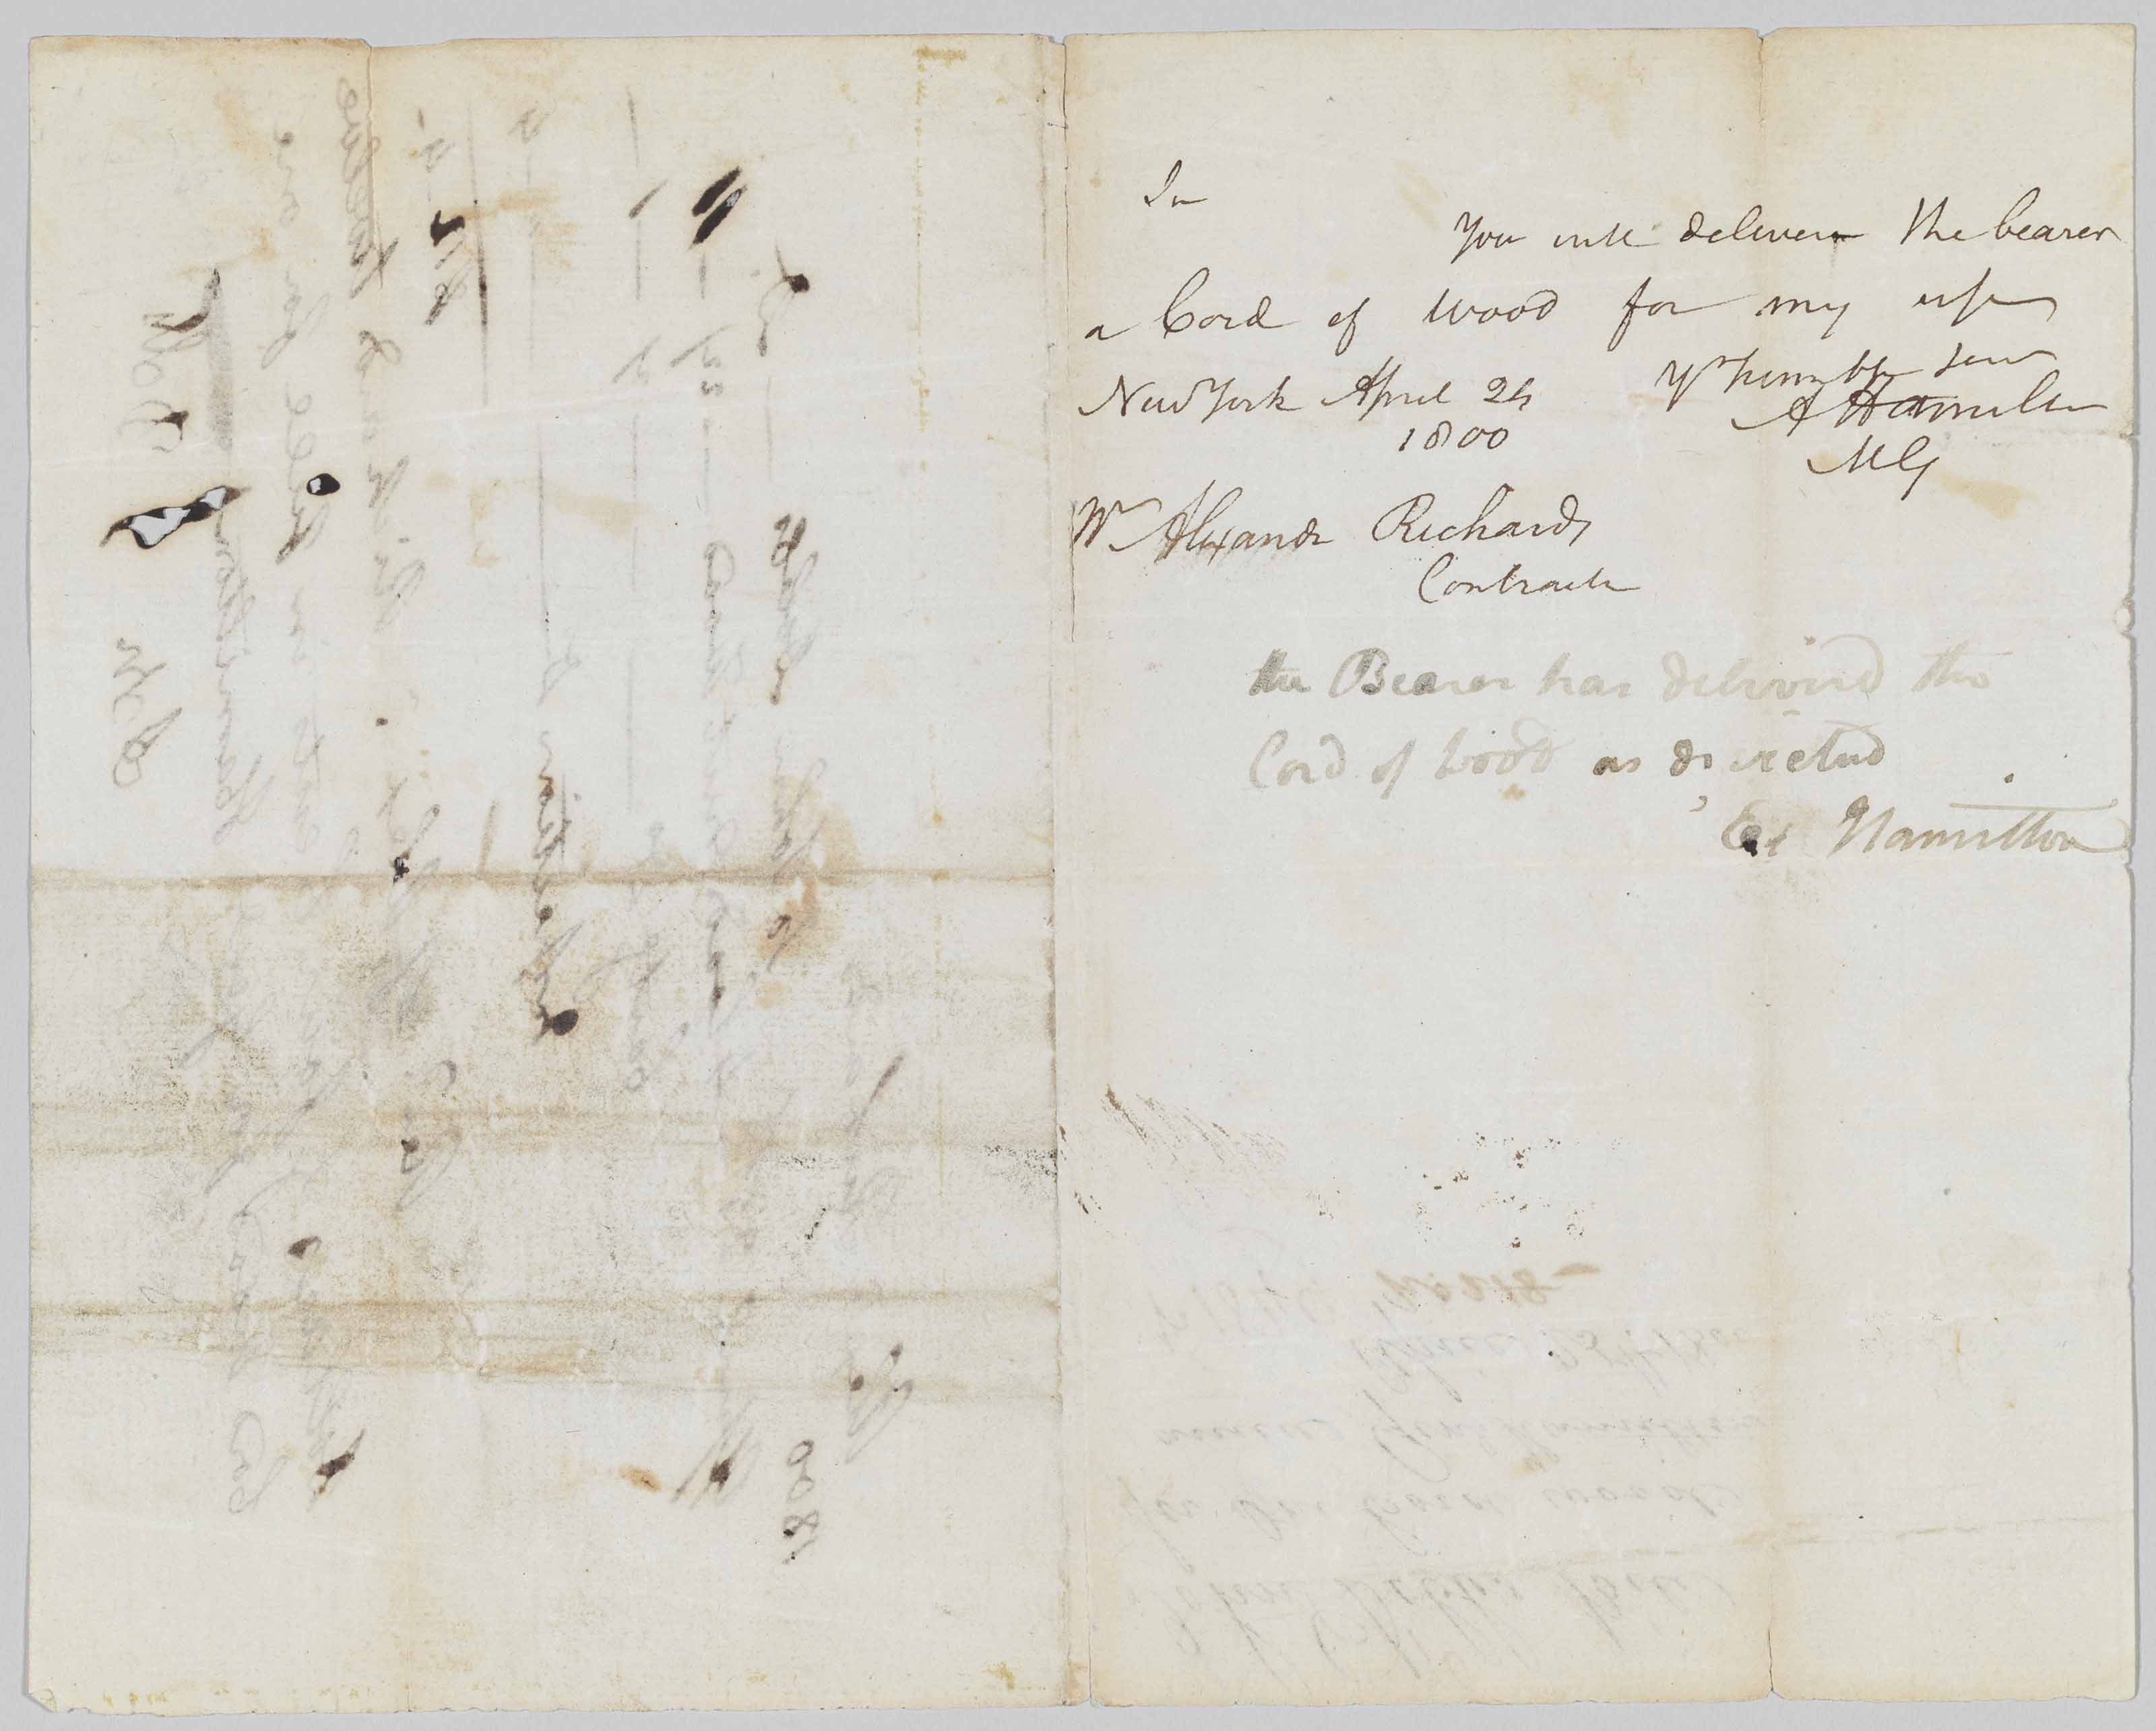 """HAMILTON, Alexander. Autograph letter signed (""""A. Hamilton""""), to Alexander Richards, New York 24 April 1800. 1 page, 8vo. WITH AUTOGRAPH ENDORSEMENT SIGNED BY HAMILTON'S WIFE ELIZA. Autograph receipt on verso from Alexander Richards to John Dobbs dated 25 April 1800."""